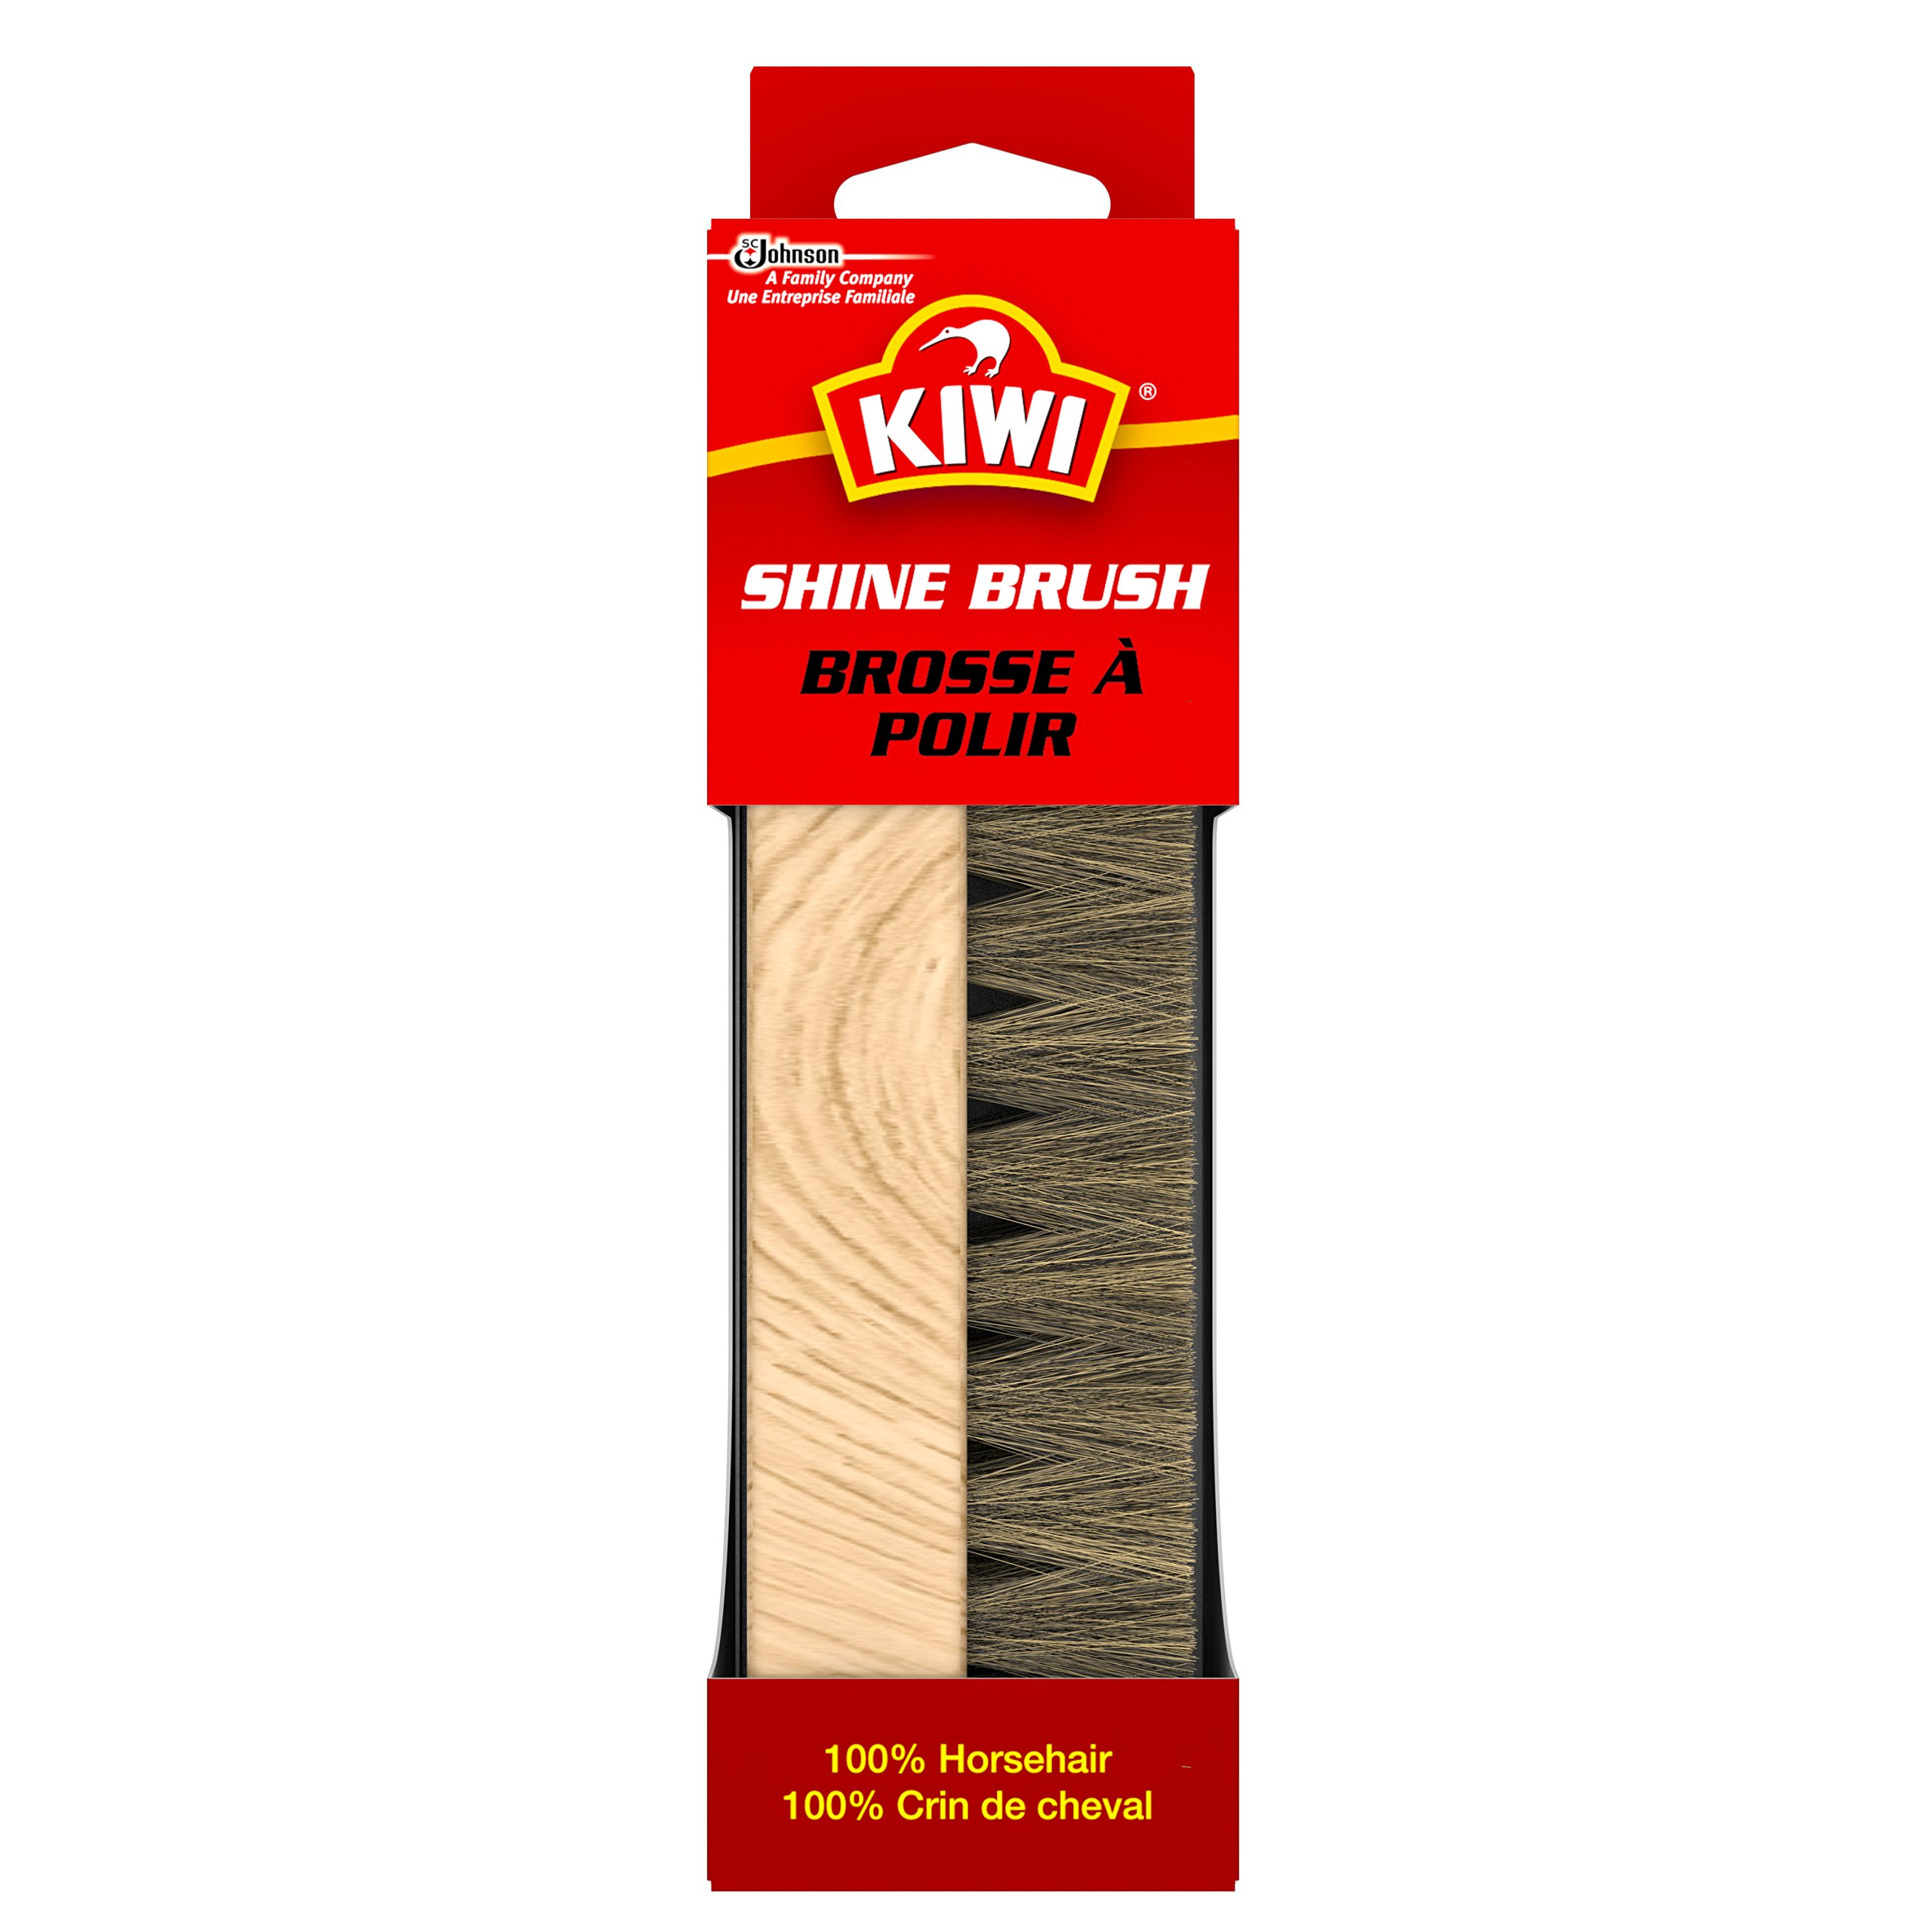 Kiwi care KIWI 100% Horsehair Shine Brush, 1 CT (Pack - 3)